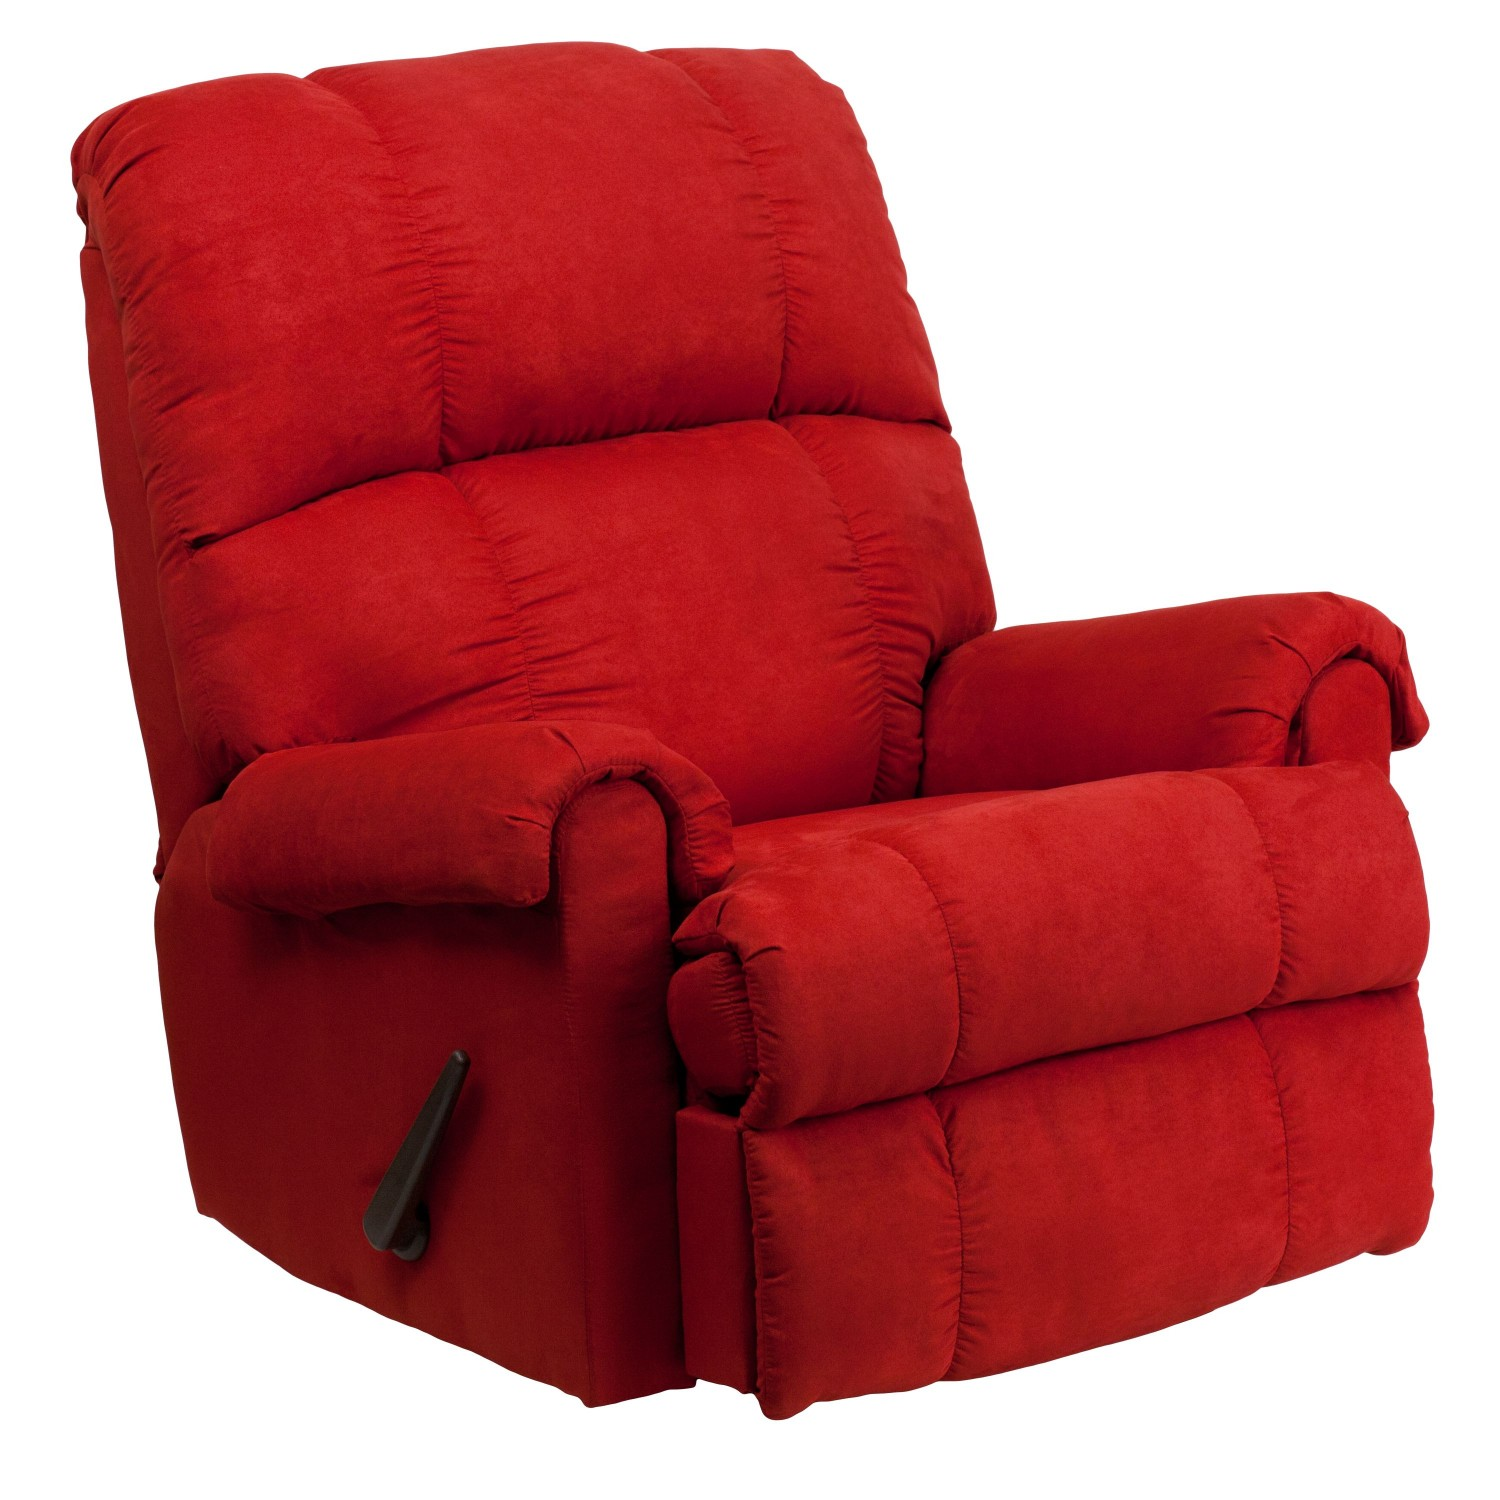 Flash Furniture WM-8700-216-GG Contemporary Flatsuede Red Rock Microfiber Rocker Recliner